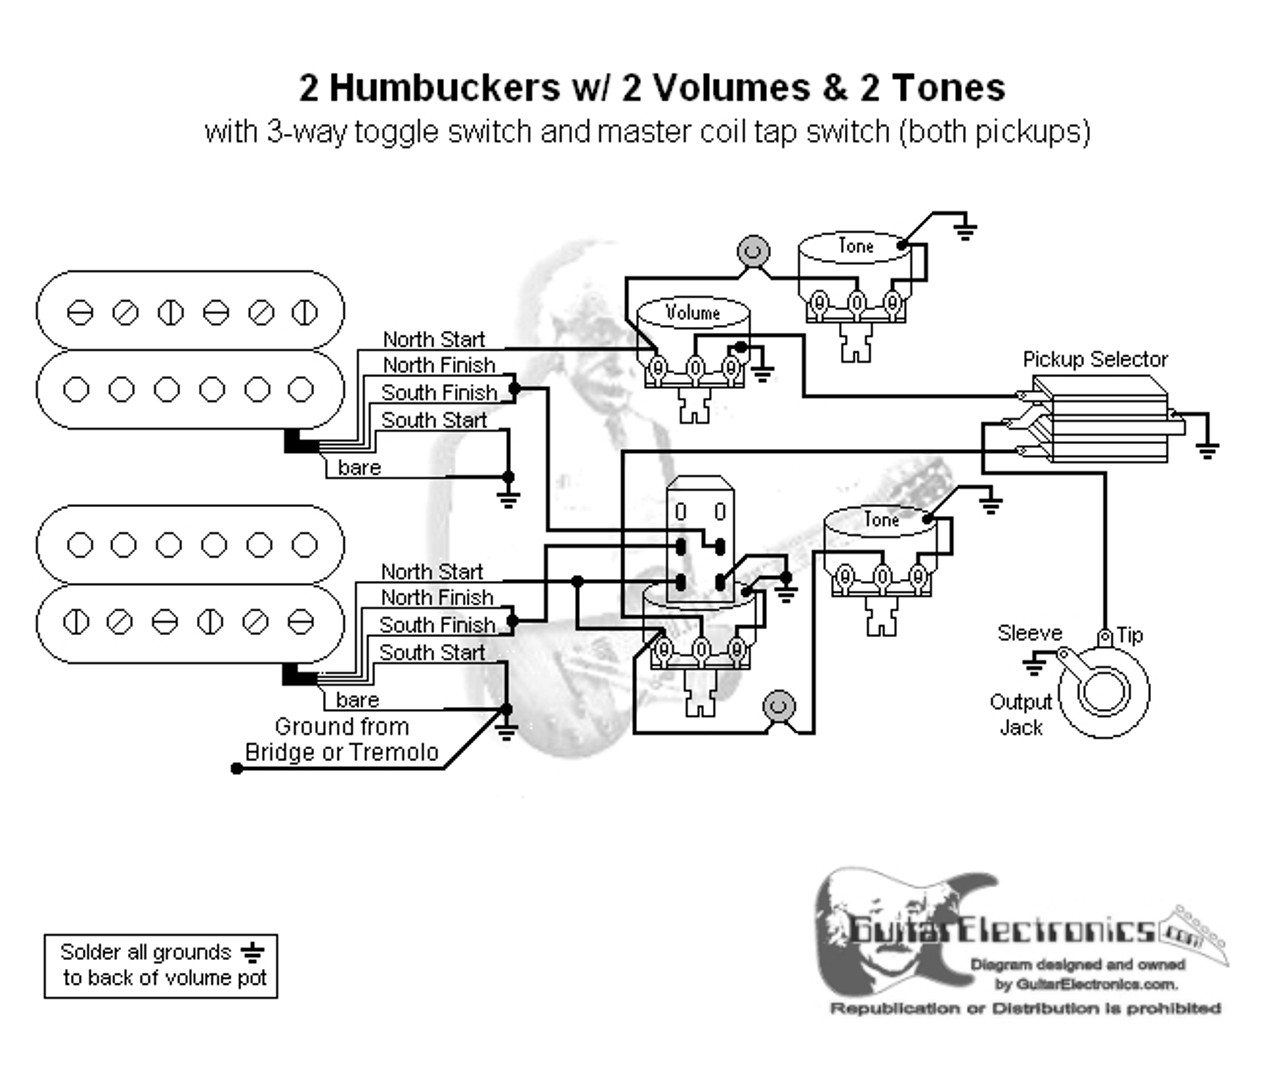 2 humbuckers 3 way toggle switch 2 volumes 2 tones coil  guitar wiring diagram two humbuckers #12